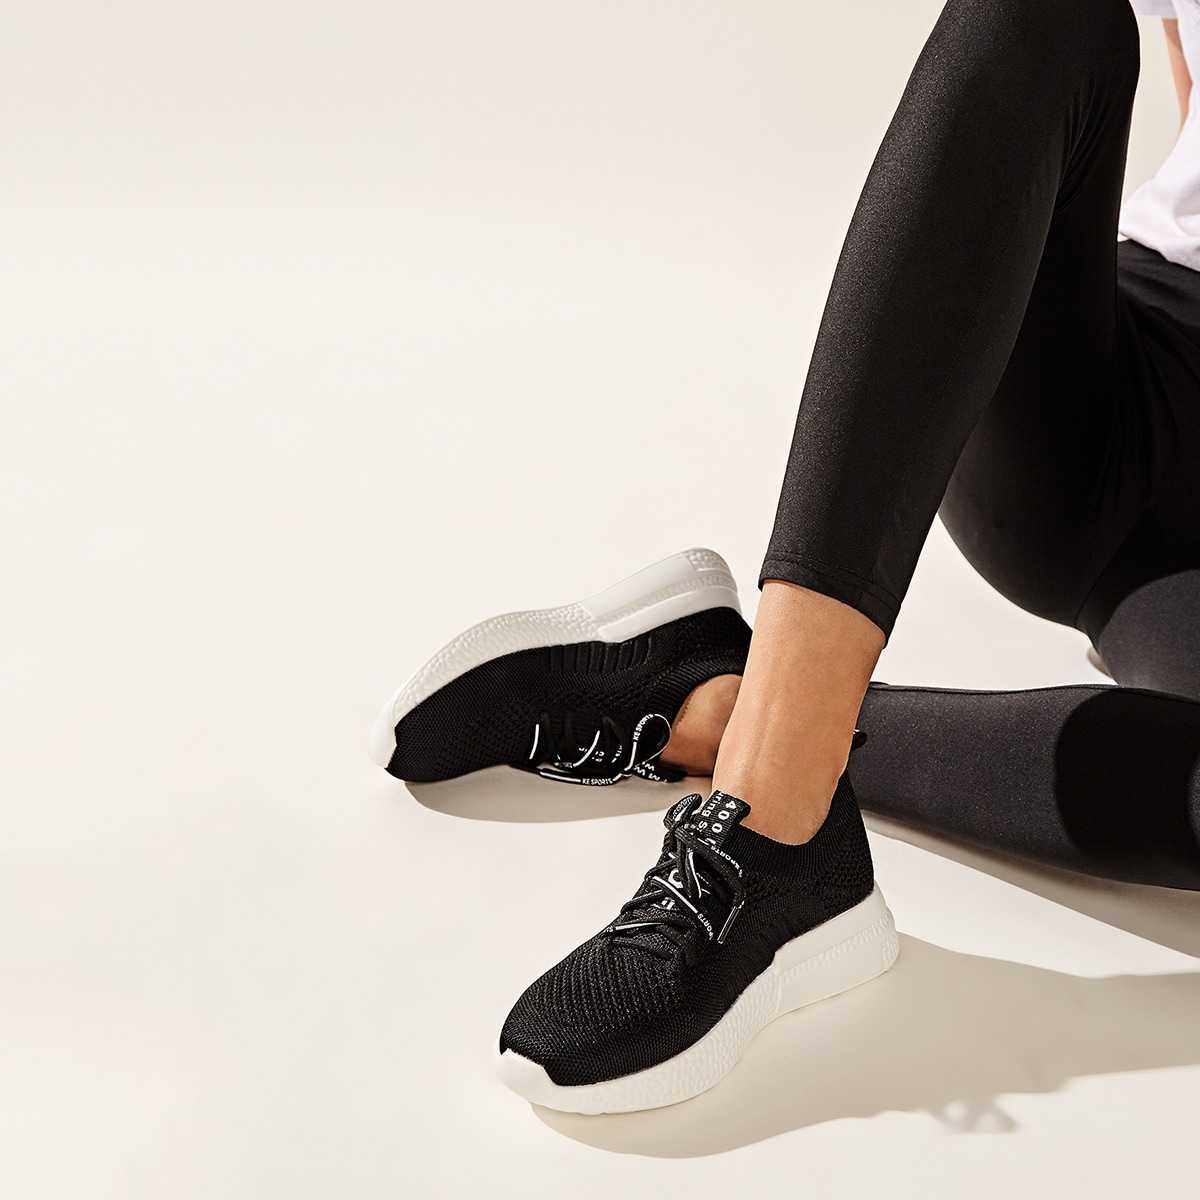 Lace-up Front Knit Trainers in Black by ROMWE on GOOFASH